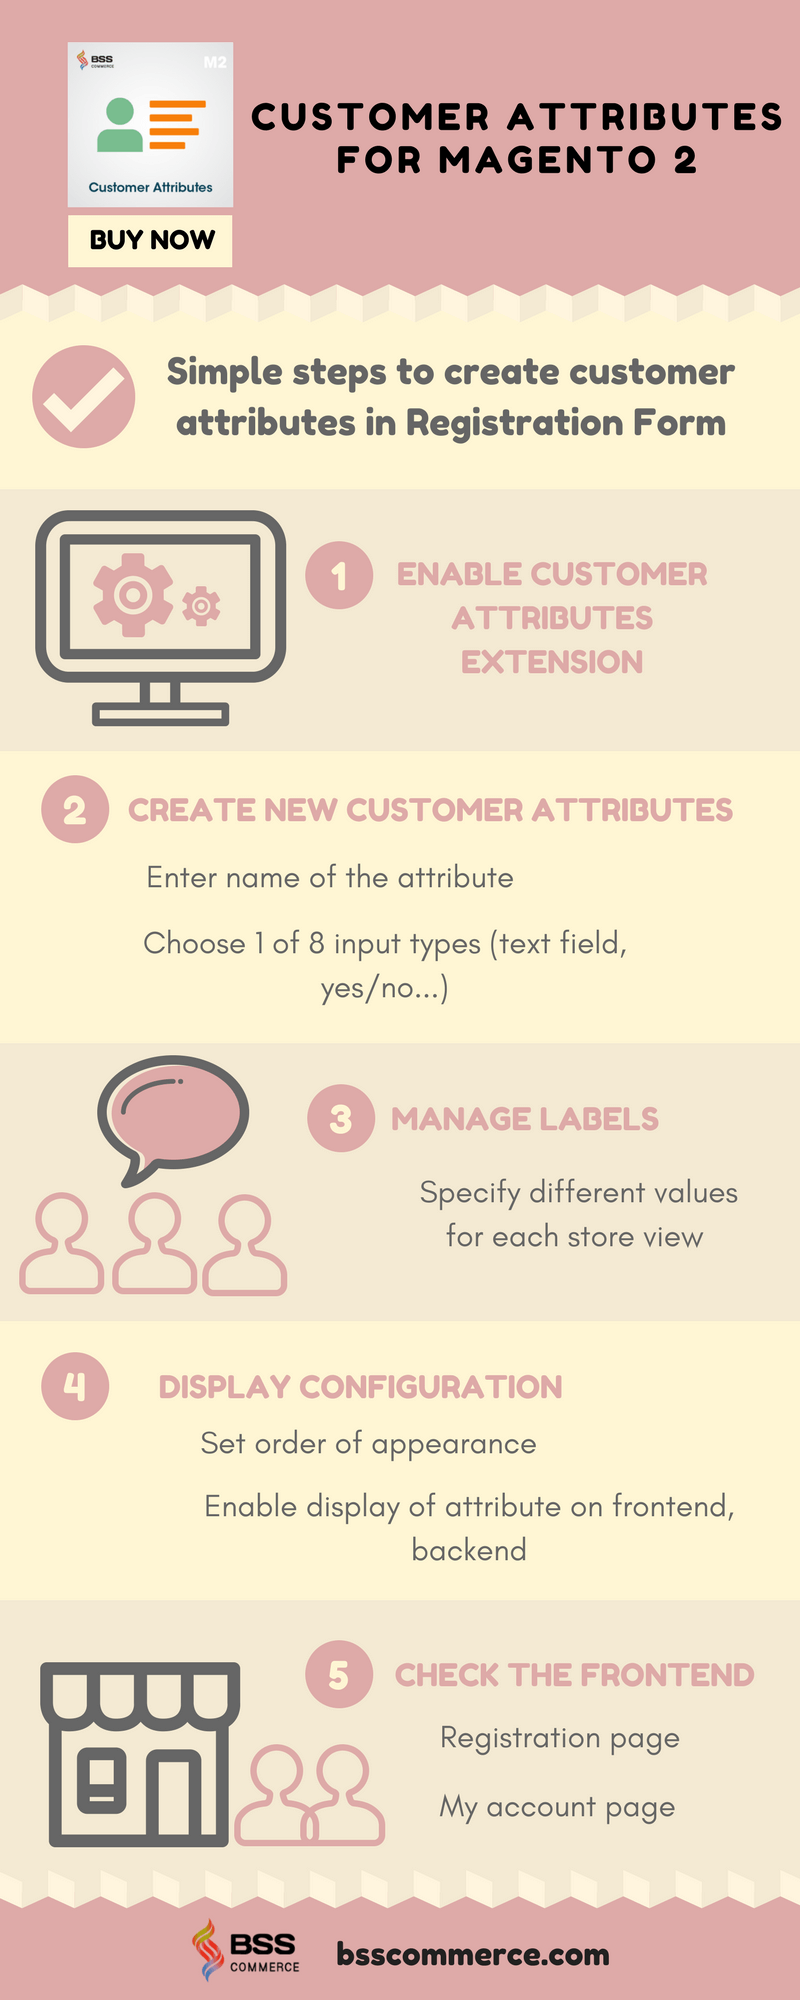 Benefits of Magento 2 Customer Attribute Extension